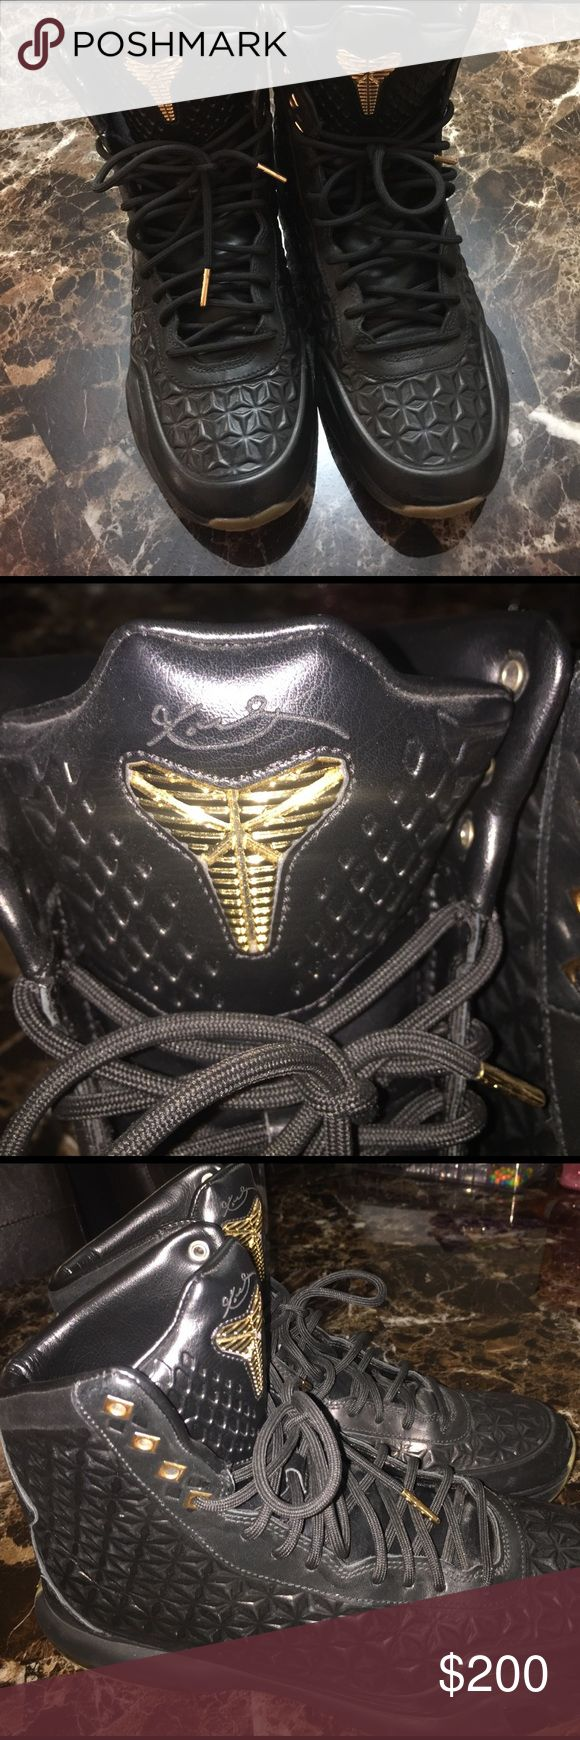 Kobe Bryant high top Worn, but in good condition Nike Shoes Sneakers